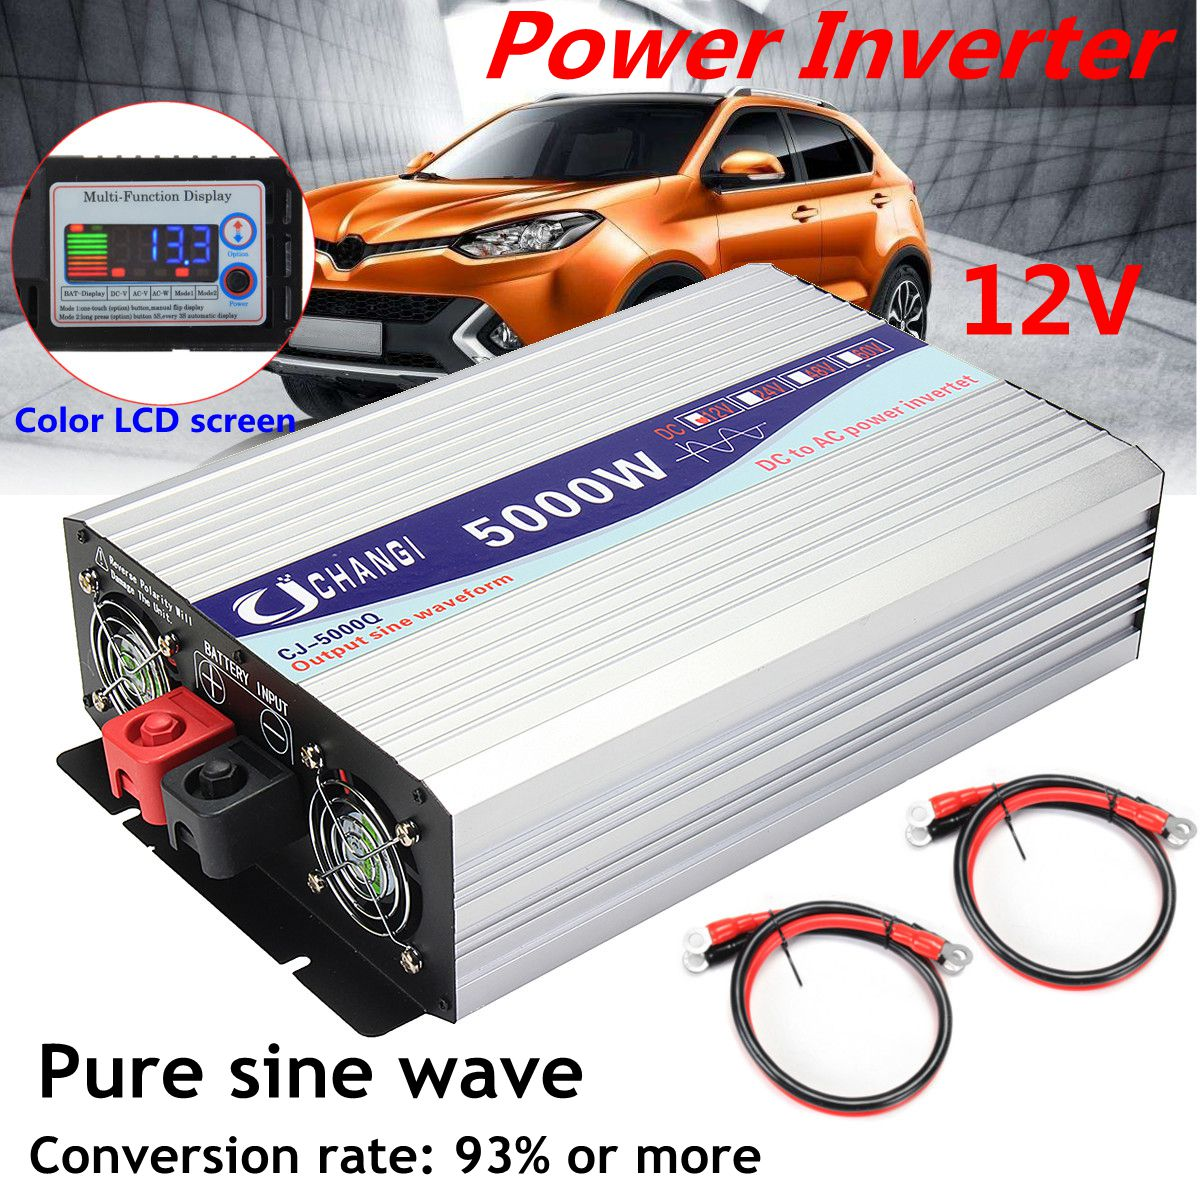 Intelligente Screen Reine Sinus Welle Power <font><b>Inverter</b></font> 12 V/24 V Zu <font><b>220V</b></font> 3000 W/4000 W /5000 W/6000 W Konverter image